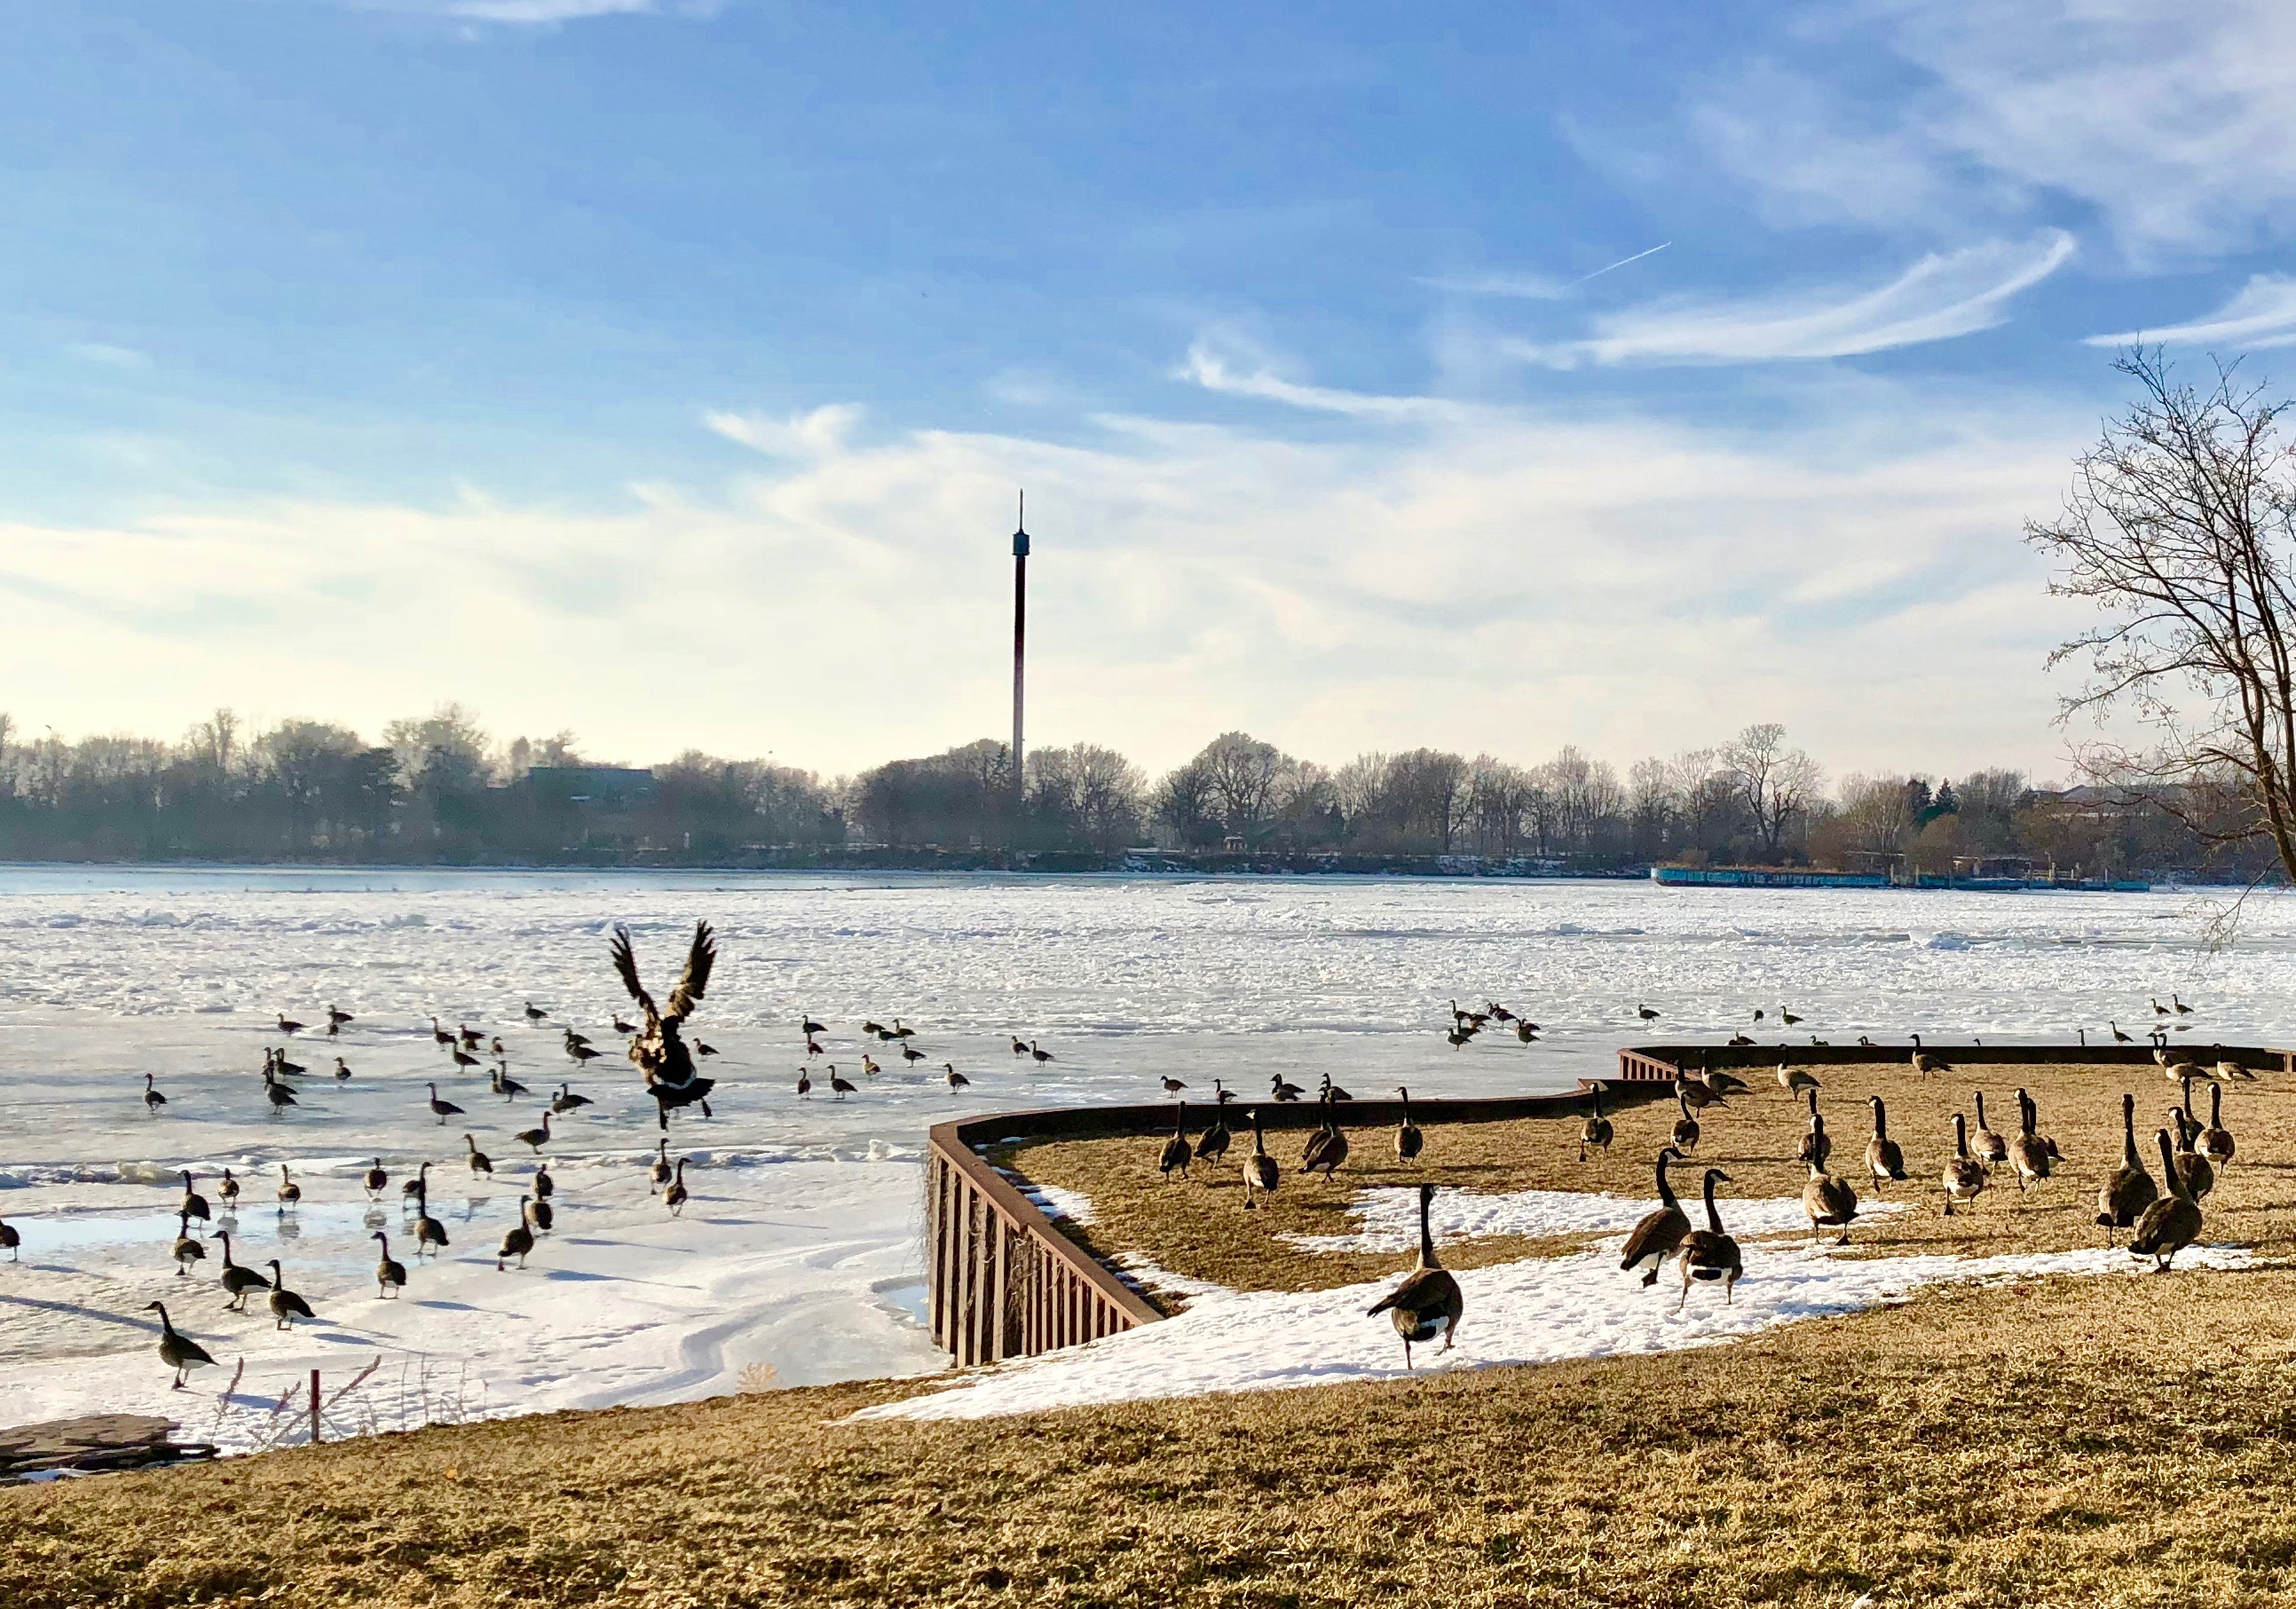 Geese near the Detroit River in Amherstburg.